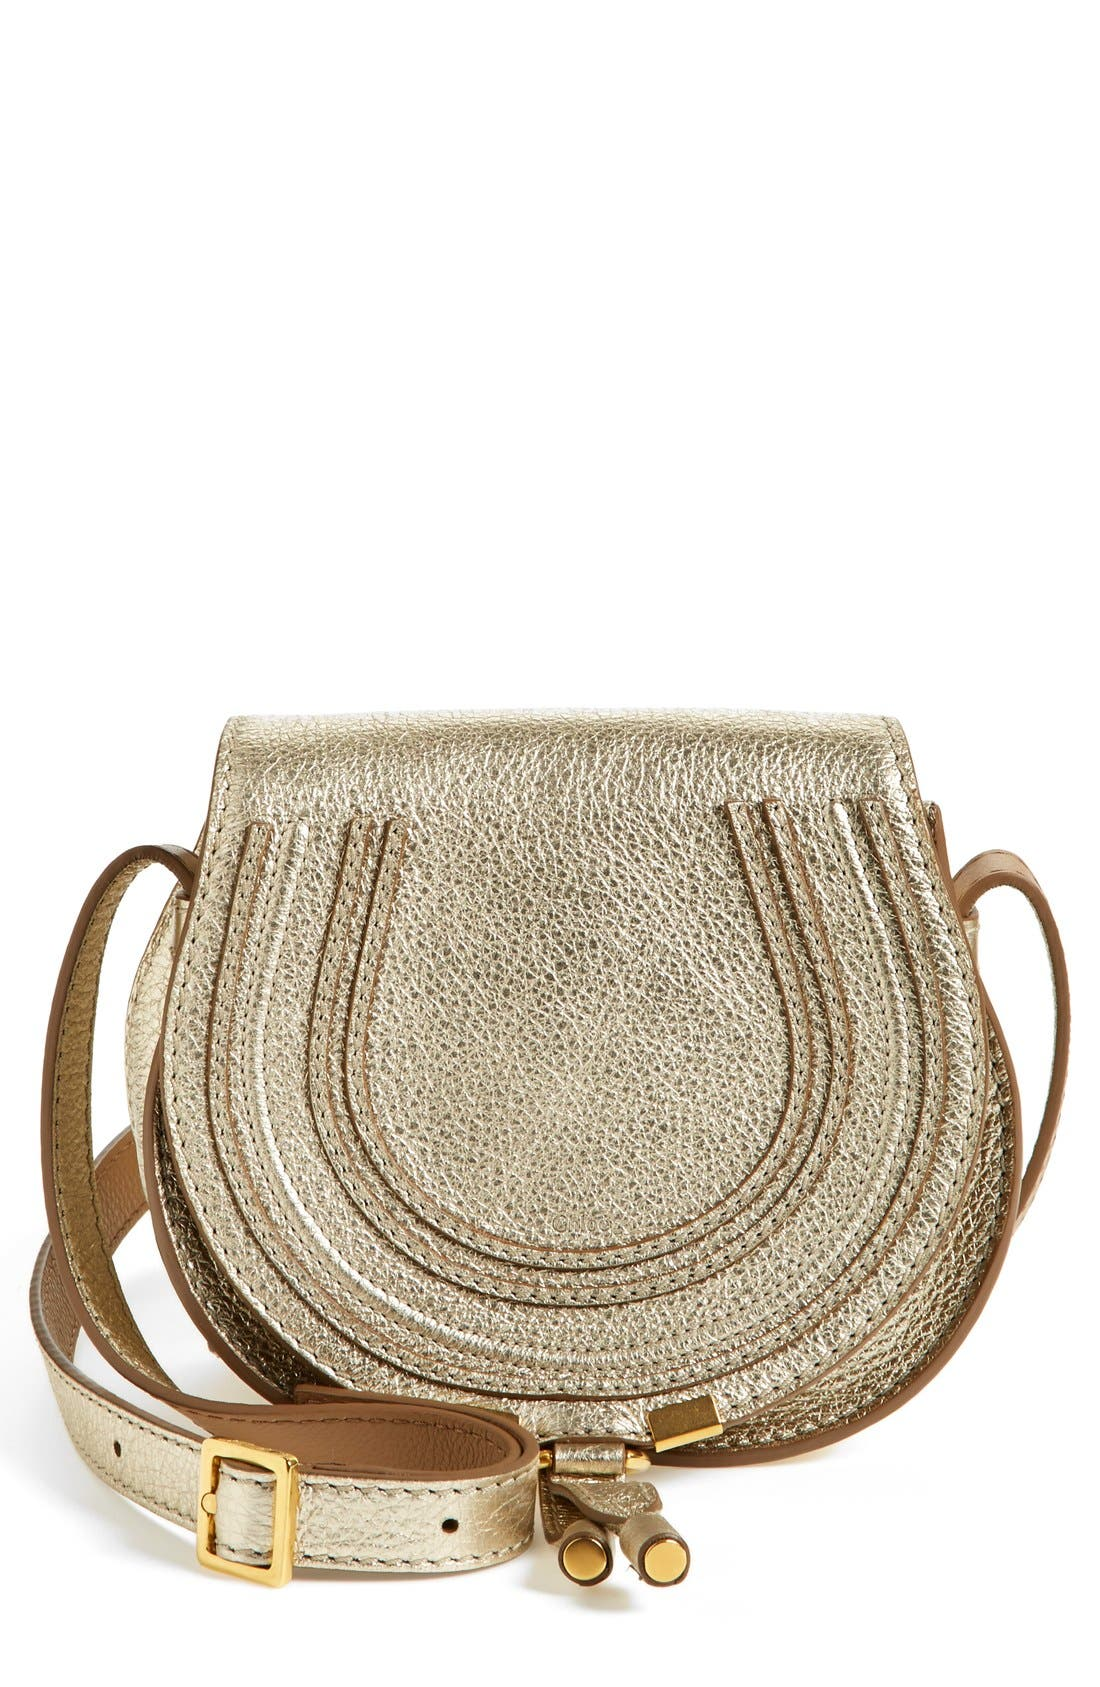 Alternate Image 1 Selected - Chloé 'Marcie - Small' Leather Crossbody Bag